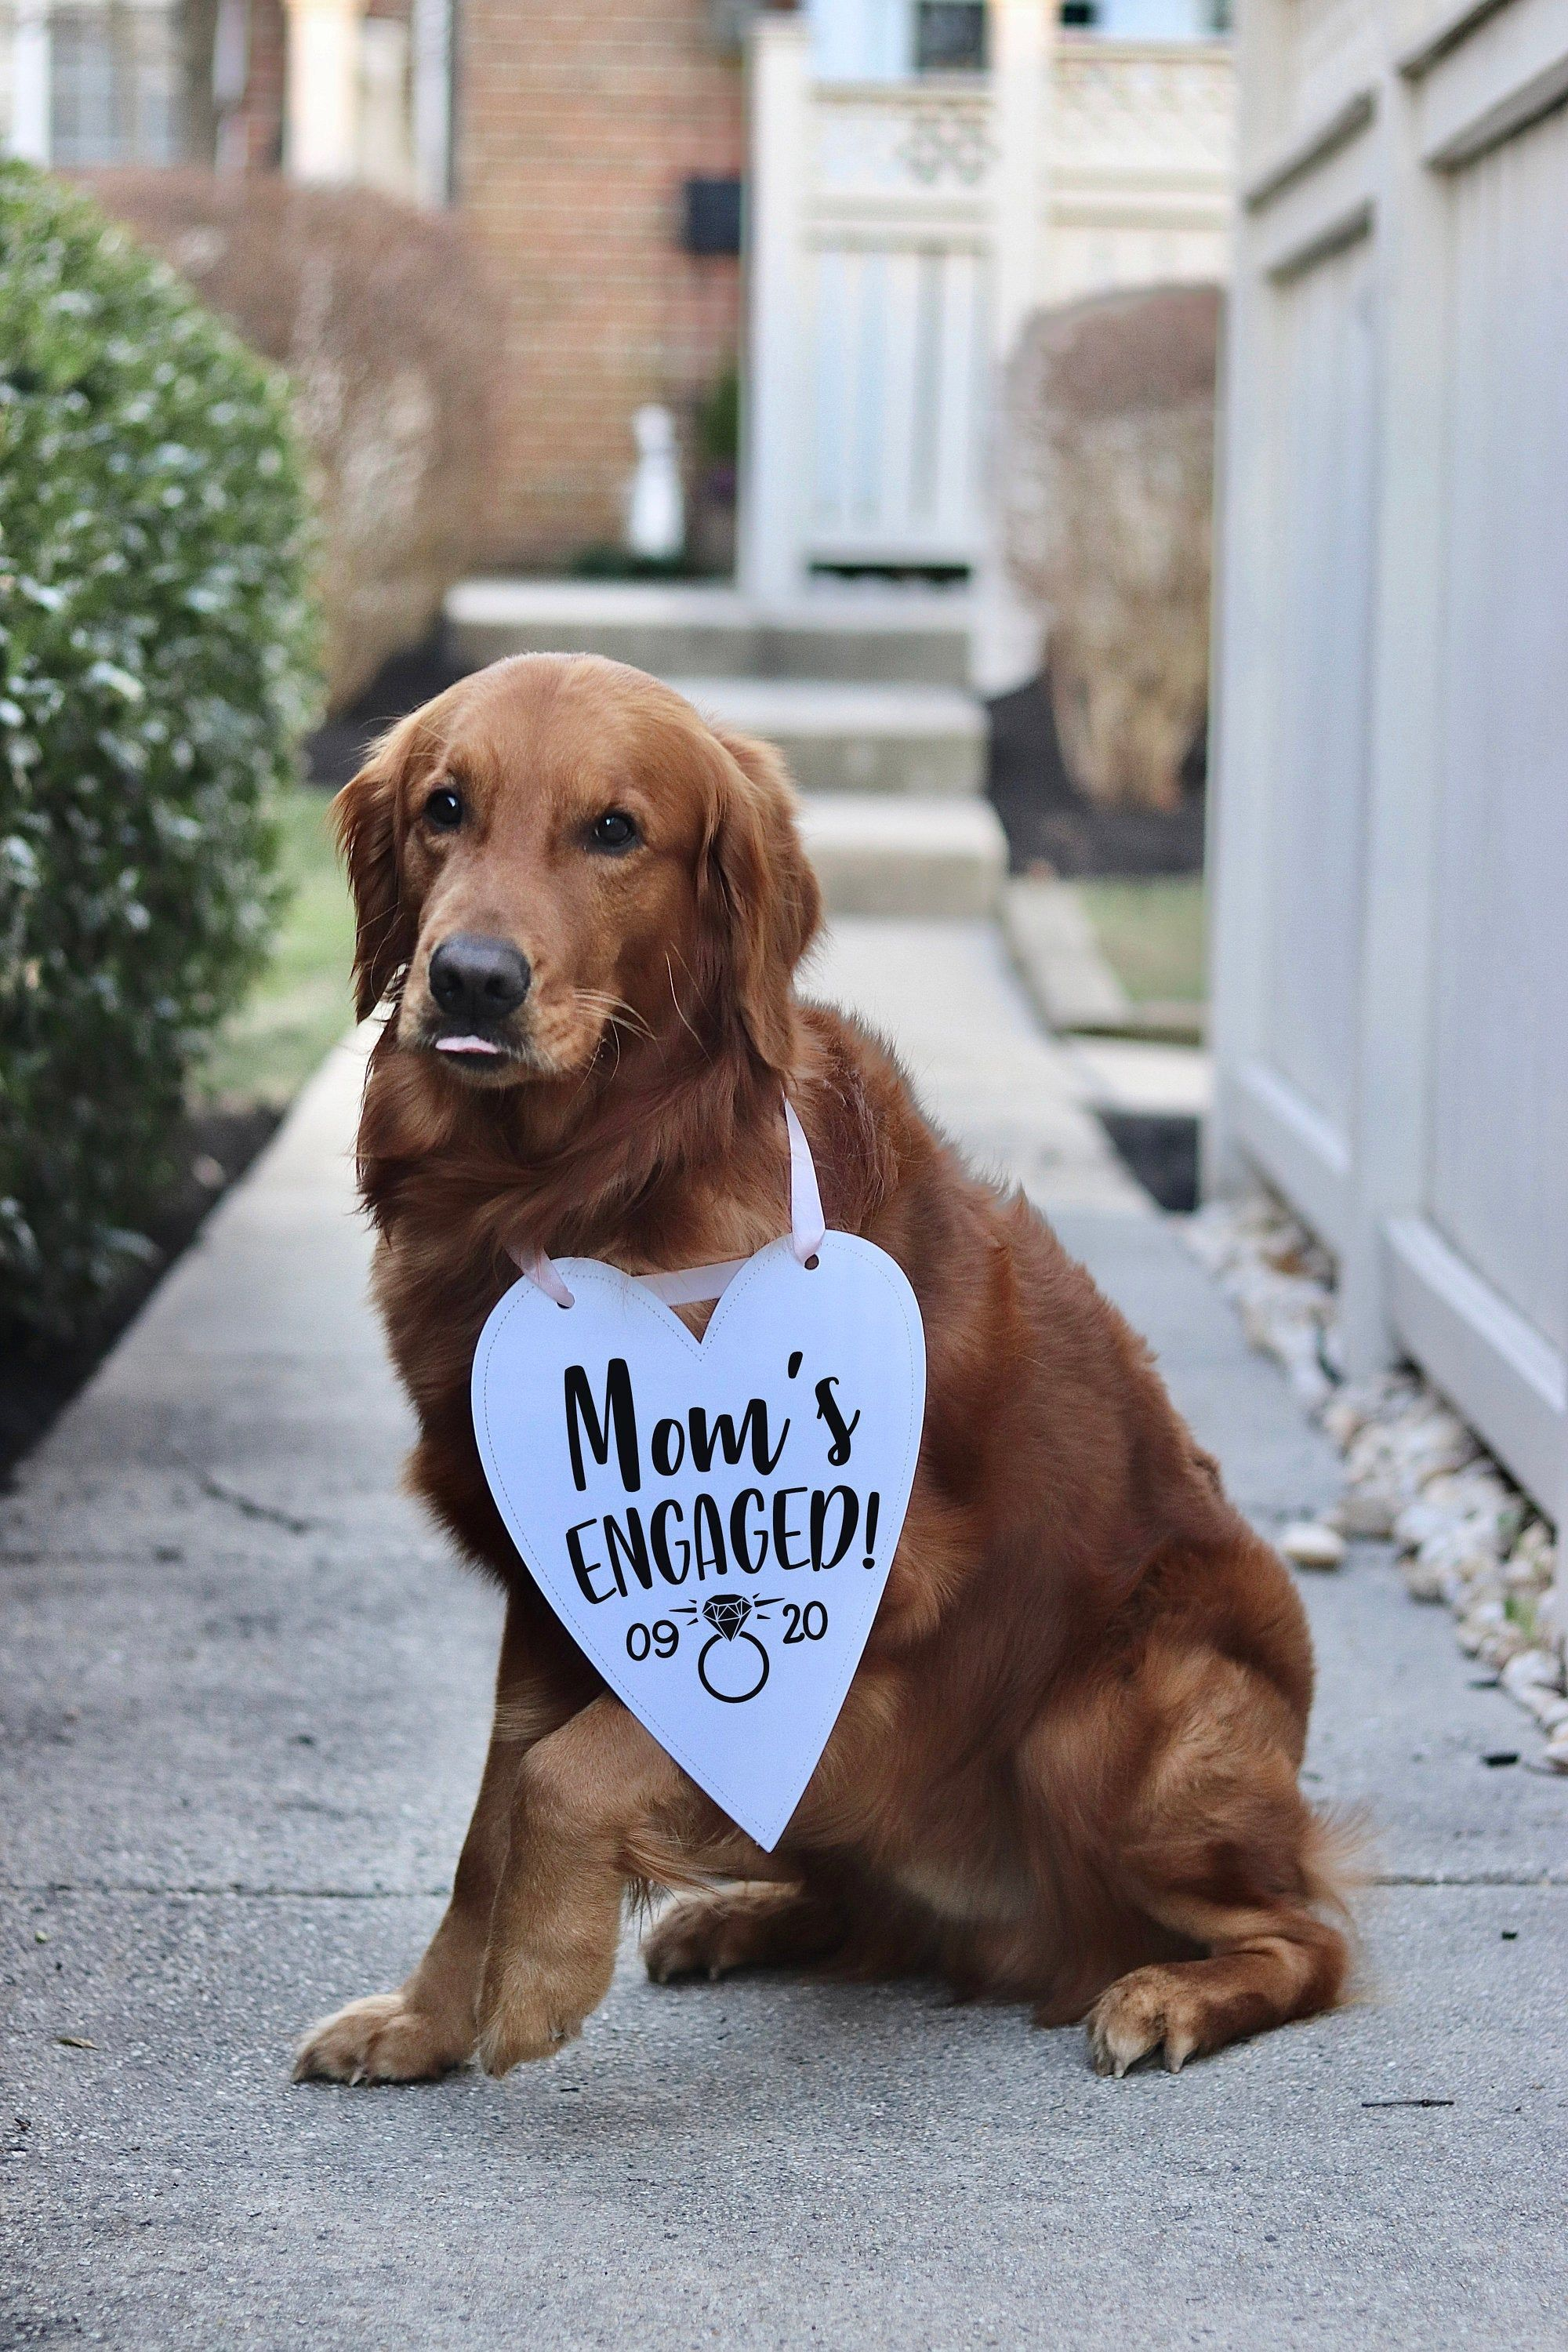 Photo of Mom's Engaged! We're Engaged! Wedding Announcement Bow Tie Engagement Photo Shoot Special Occasion Dog Sign Dog Photo Prop Sign Photo Shoot